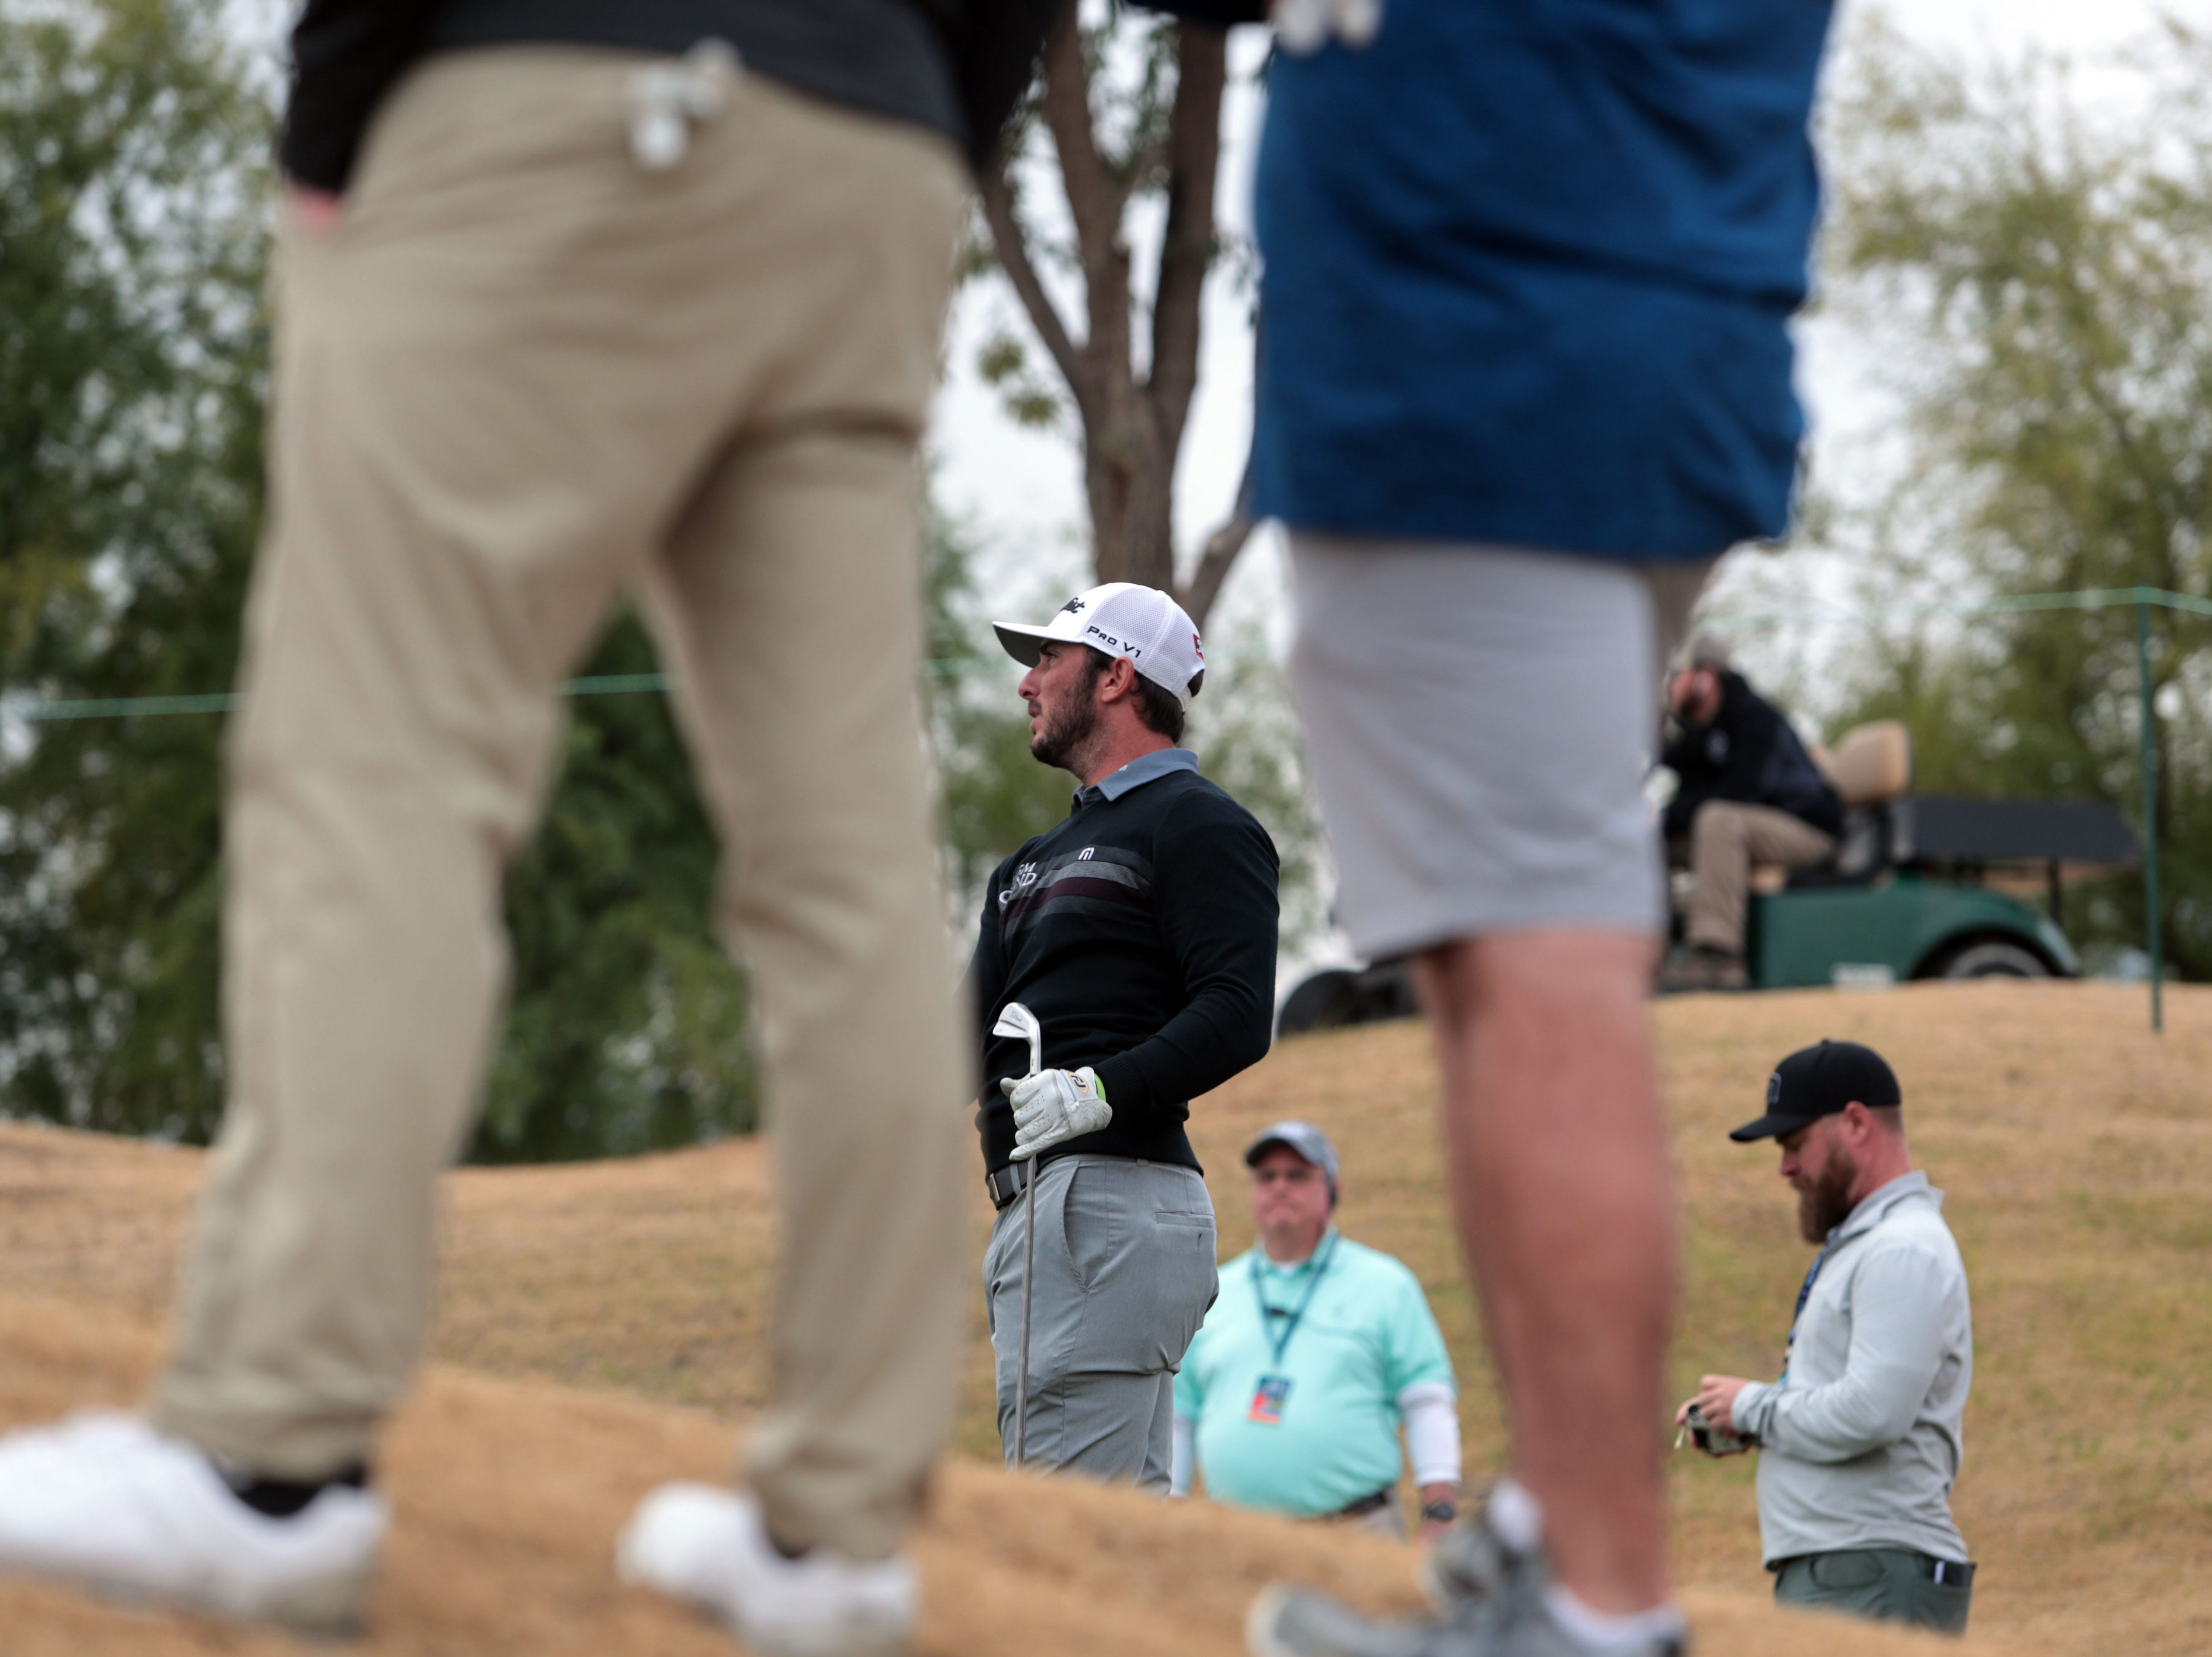 Max Homa on 17 tee in the Stadium Course during the pro-am portion of Desert Classic on Wednesday, January 16, 2019 in La Quinta.